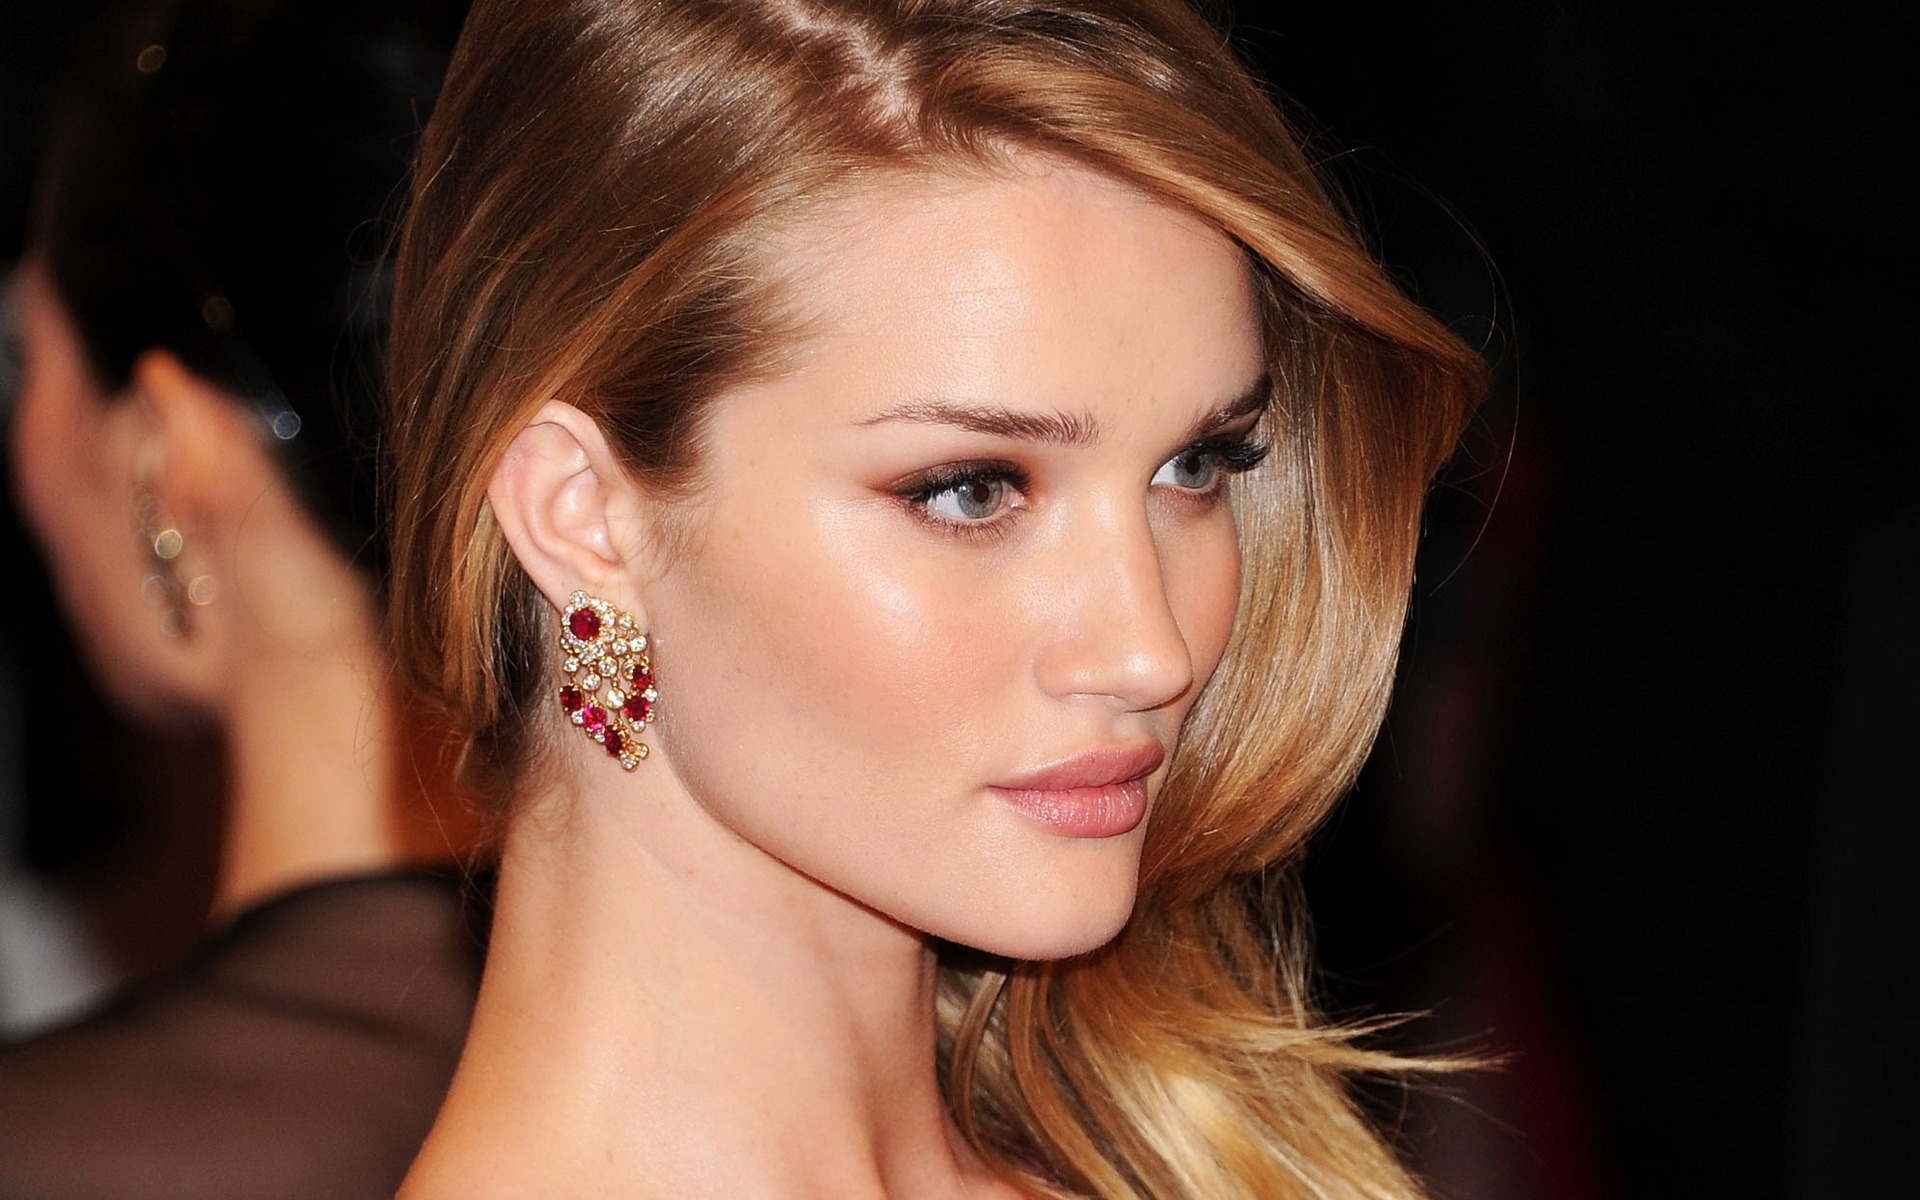 Rosie Huntington Whiteley #006 - 1920x1200 Wallpapers Pictures Photos Images